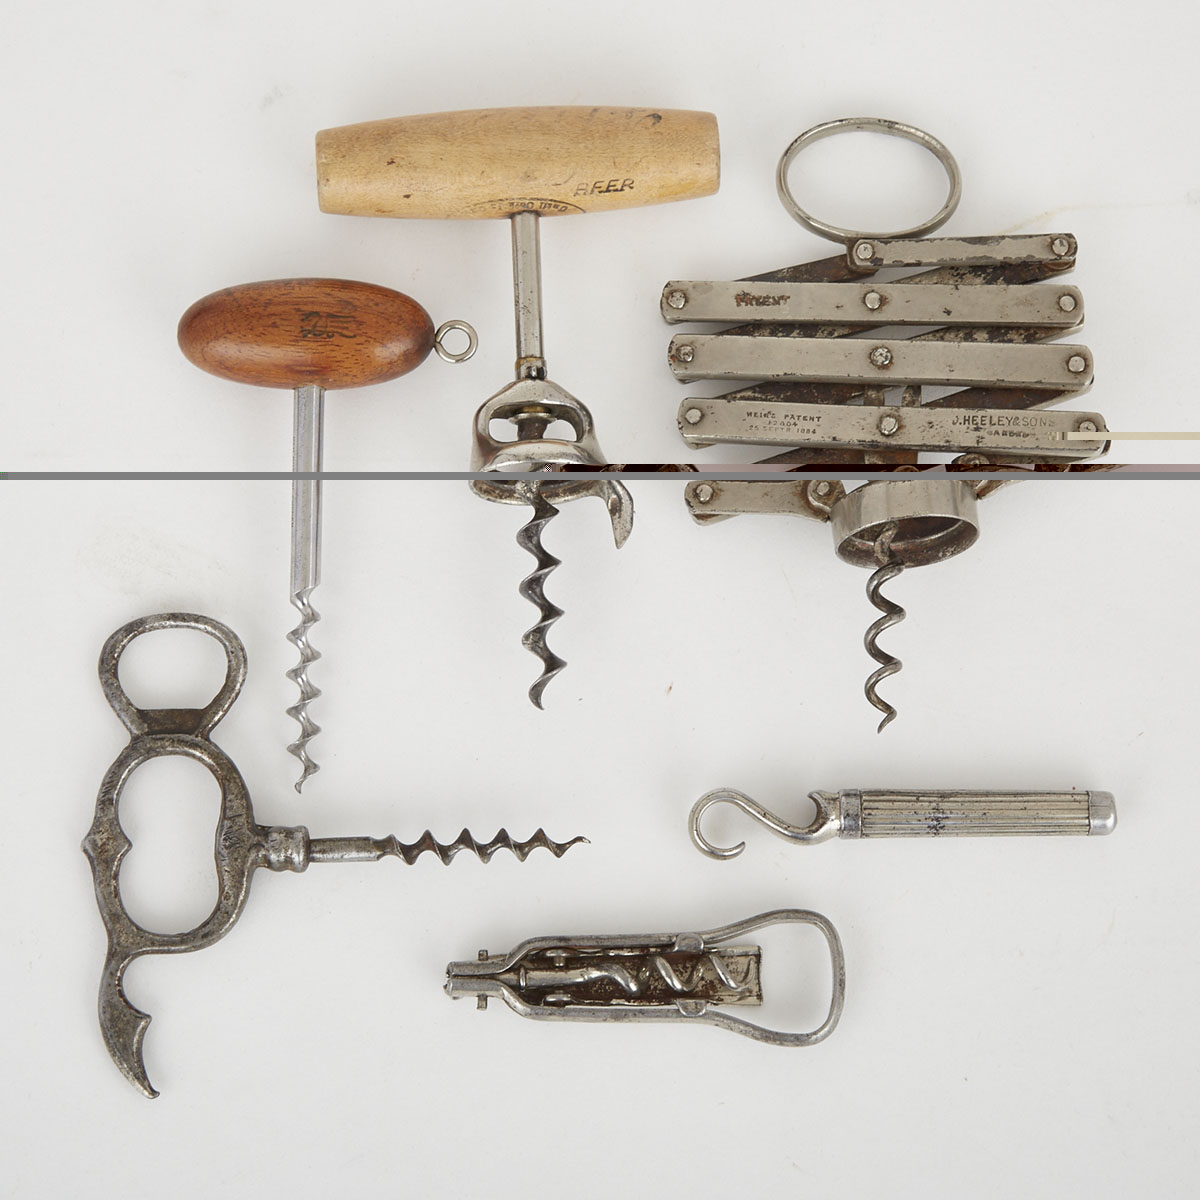 Group of Six Vintage Corkscrews, 19th/20th century